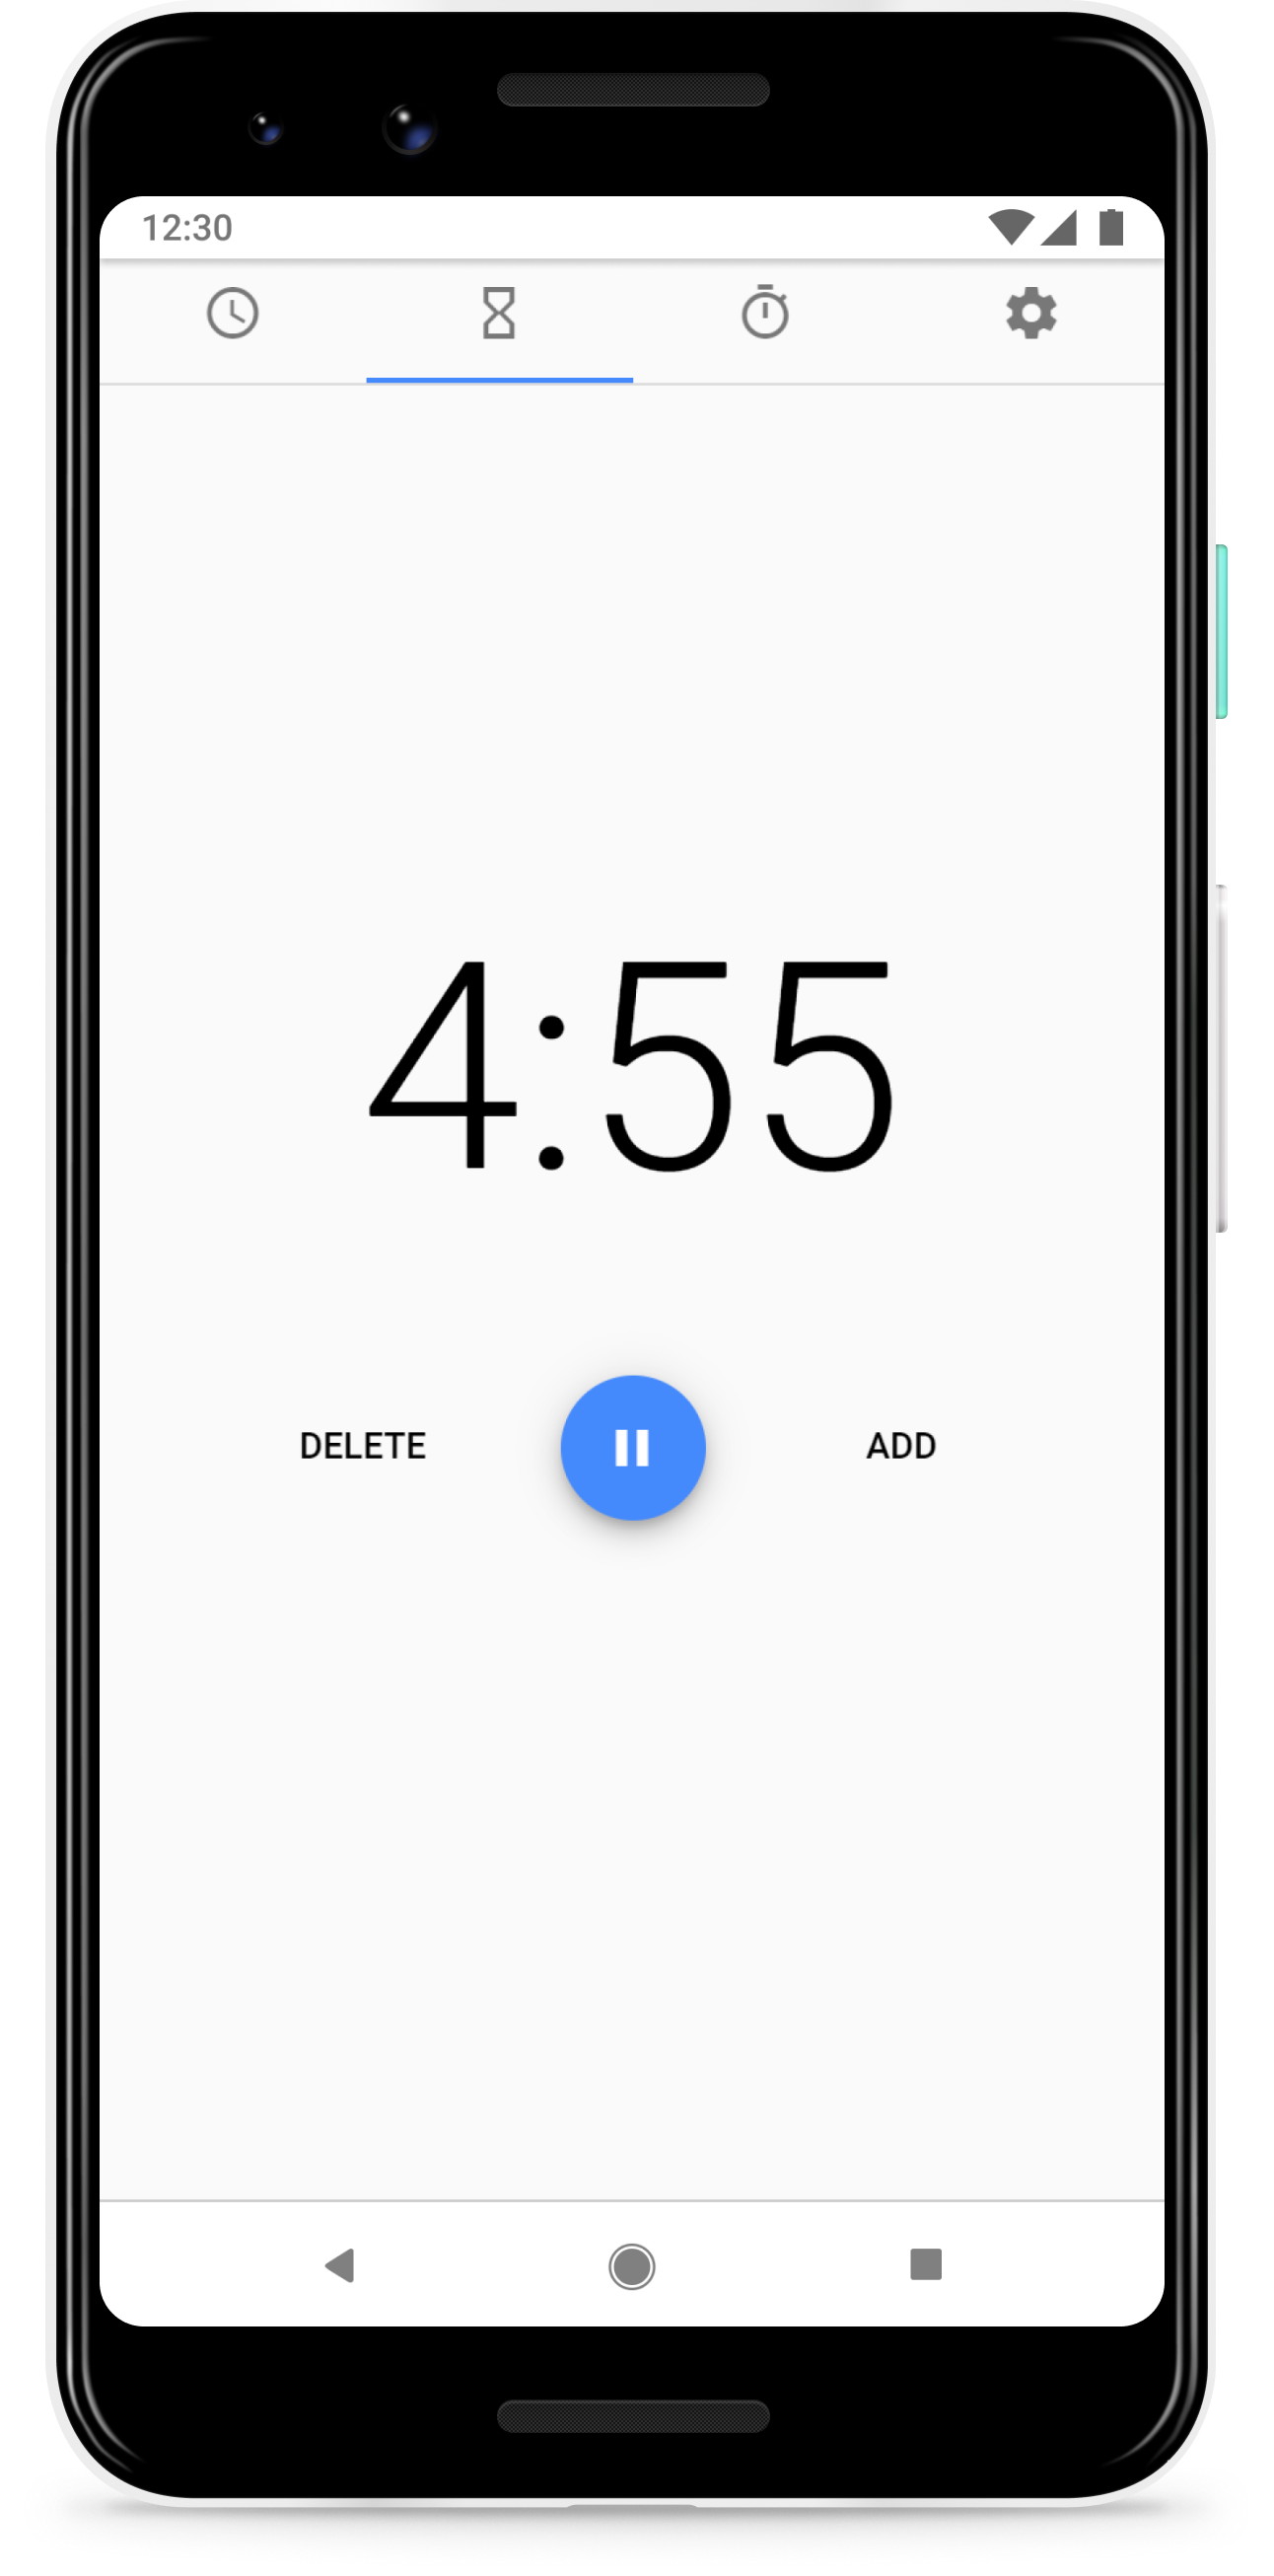 Image of app on a smartphone